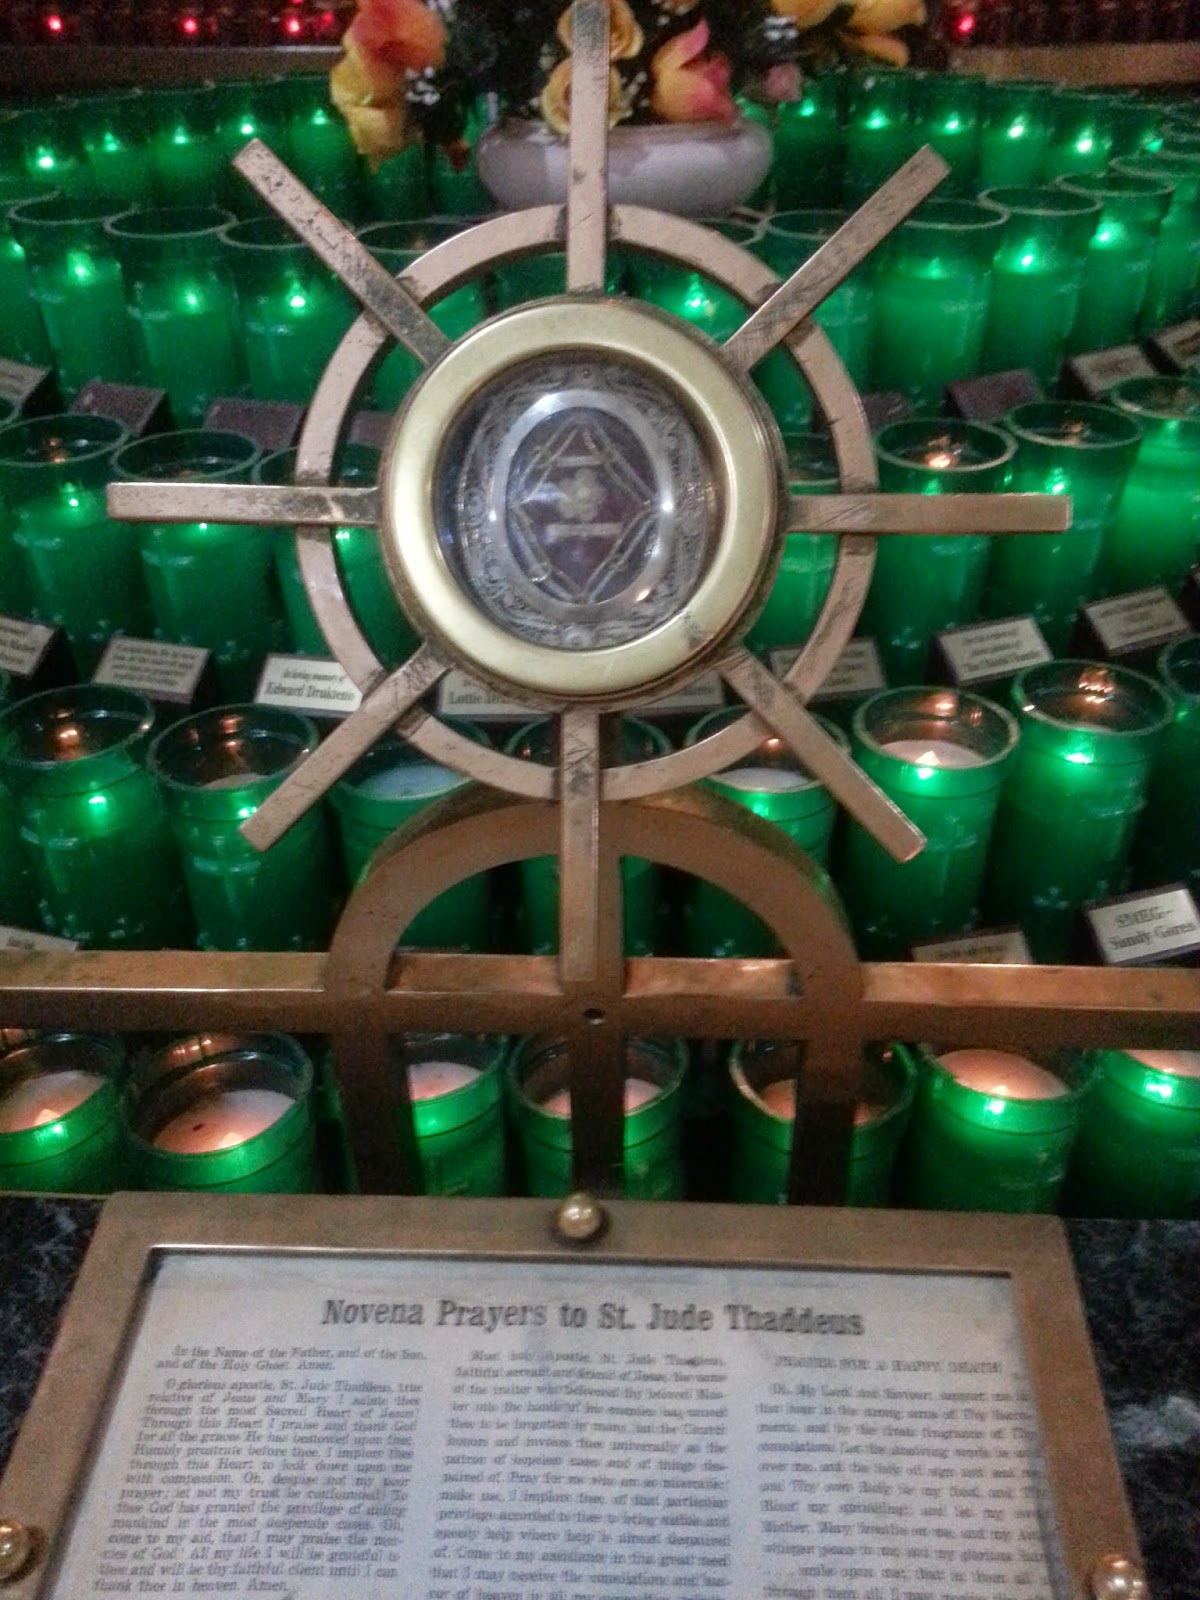 While Often Unknown Even By Local Catholics, The Shrine Of St Jude, A  Dominican Run Shrine, In Chicago, Illinois Houses One Of The Few Relics Of  An Apostle